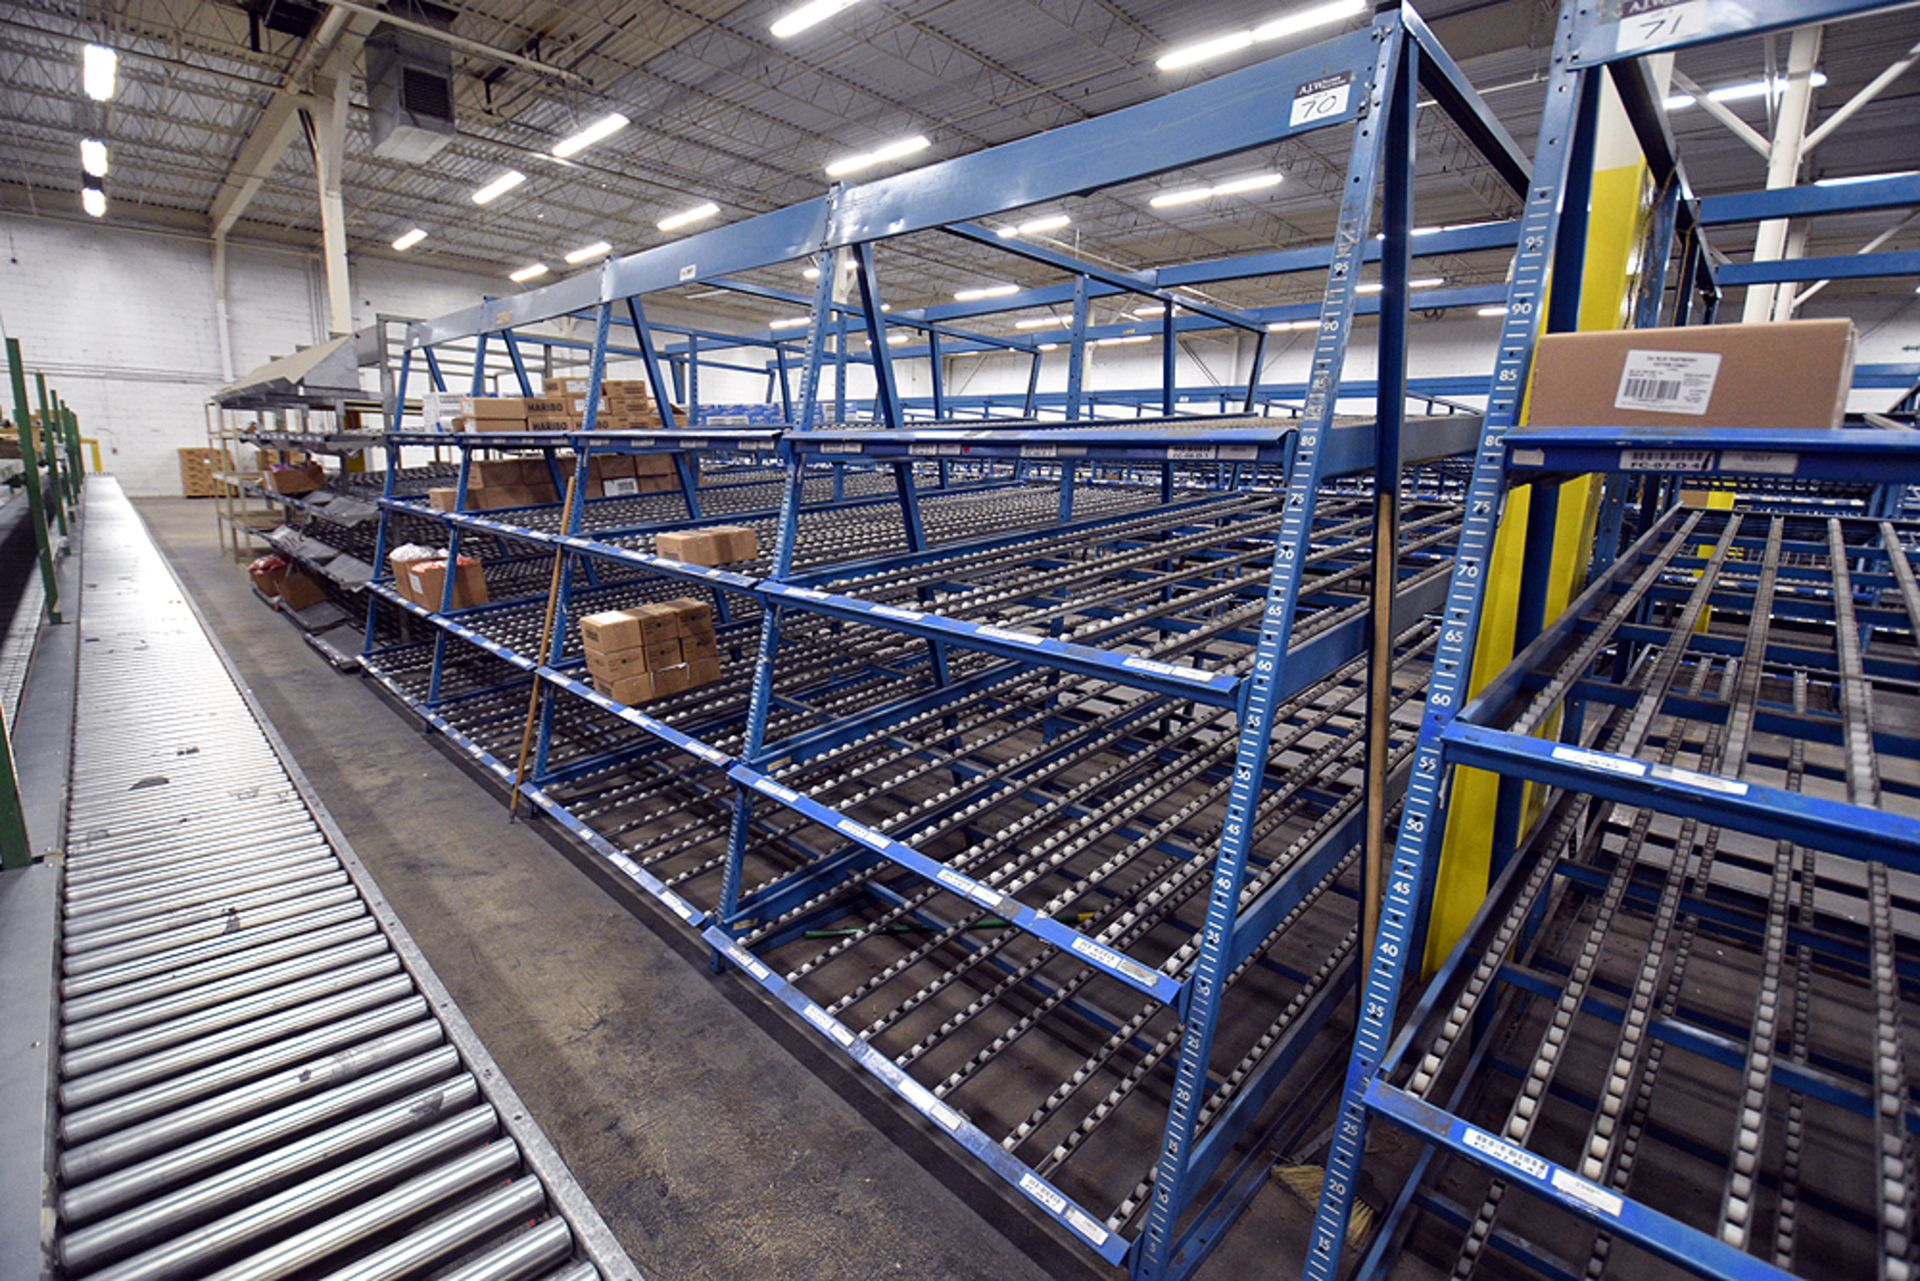 """4-Tier Gravity Fed, Carton Flow Rack (124""""x249""""x95""""H) (108""""x1"""" Rollers) - Image 3 of 3"""